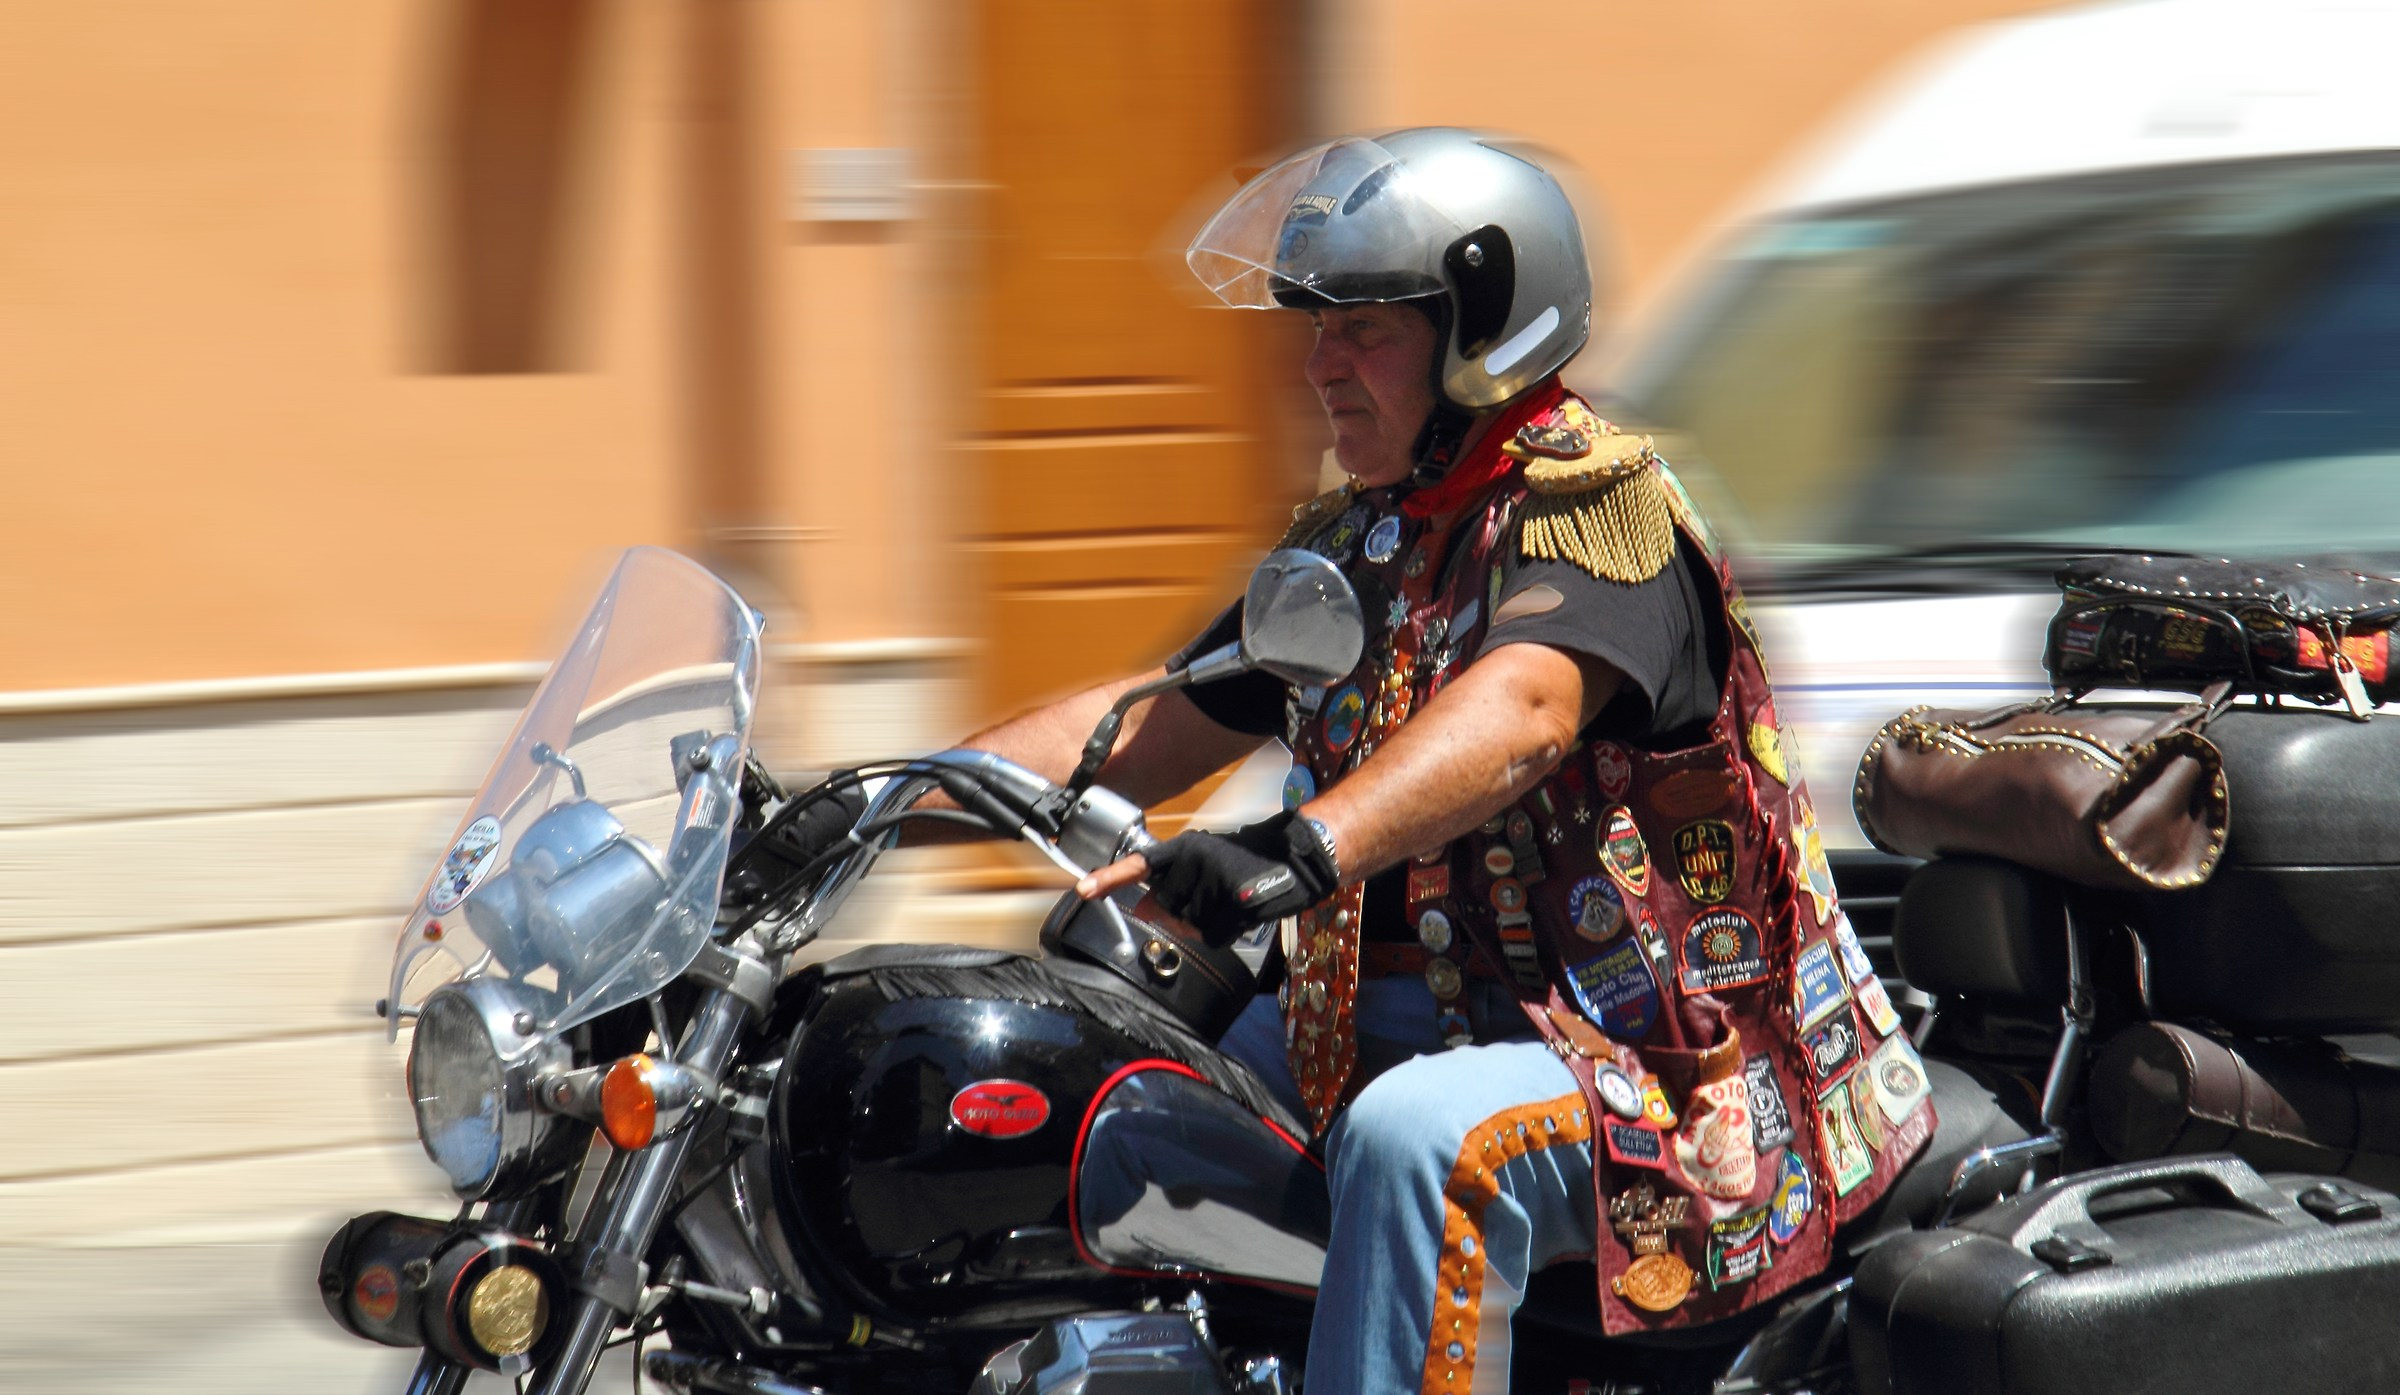 motorcycle rally...